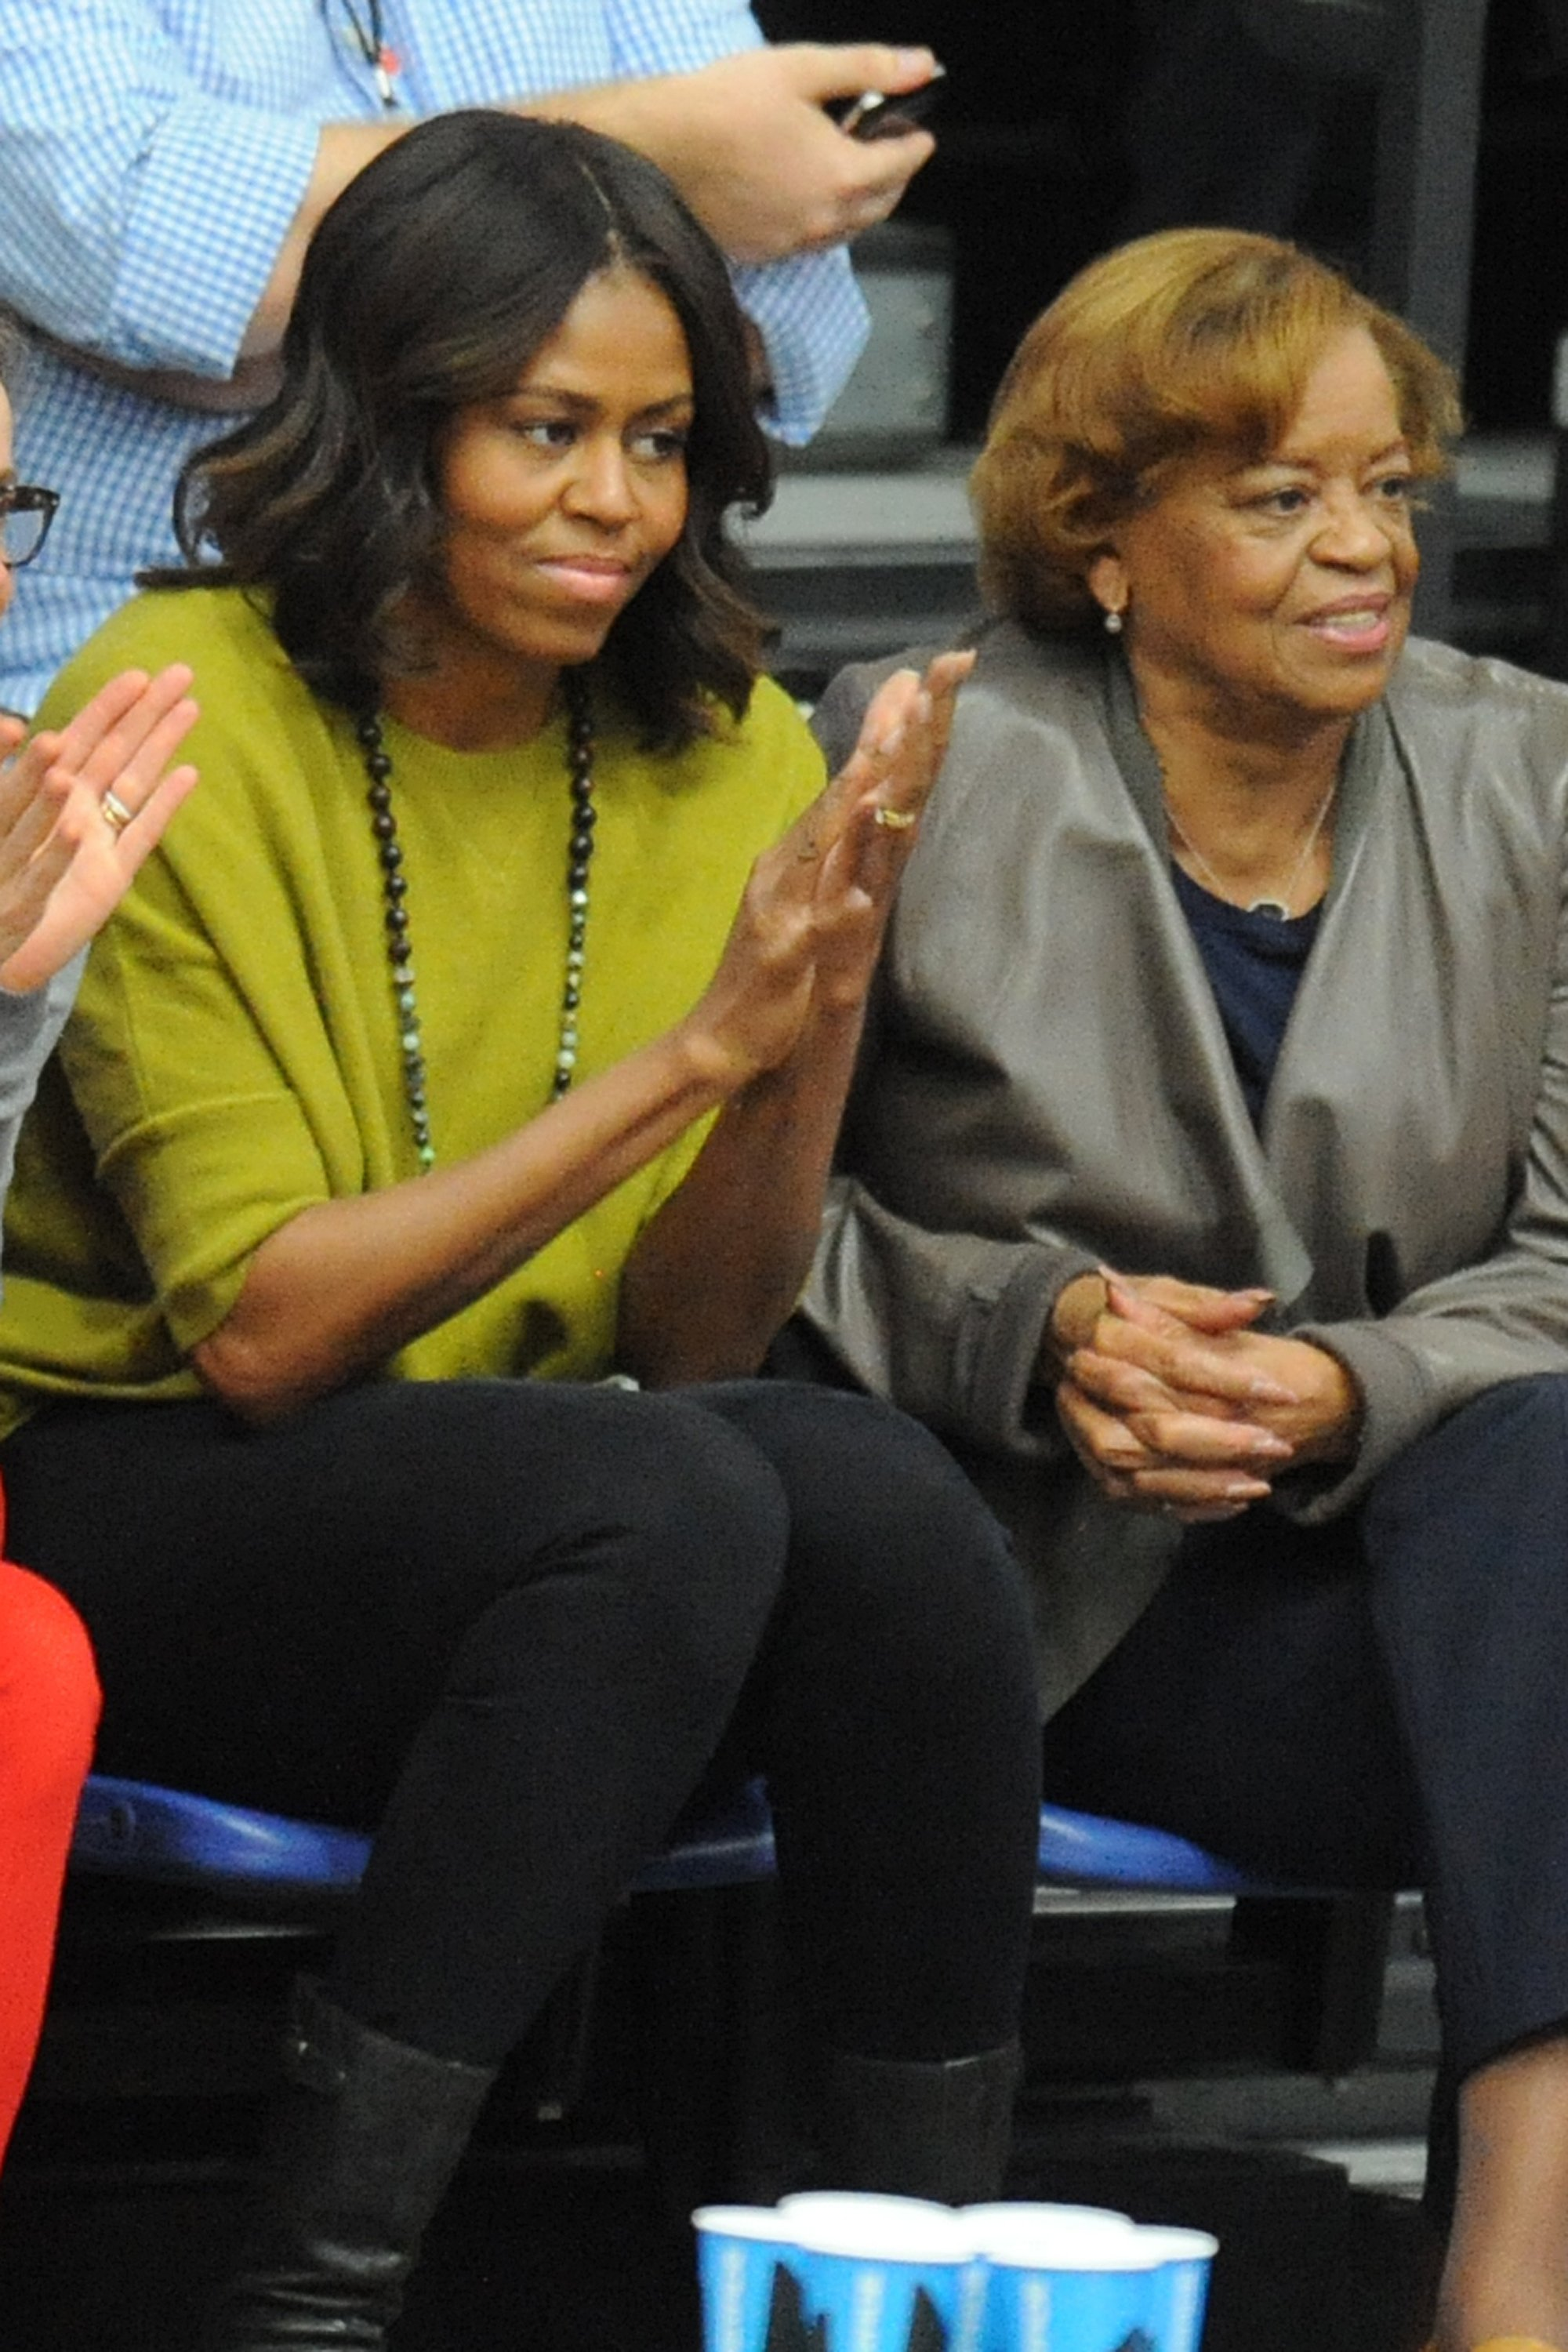 Michelle Obama and Marian Shields Robinson | Photo: Getty Images